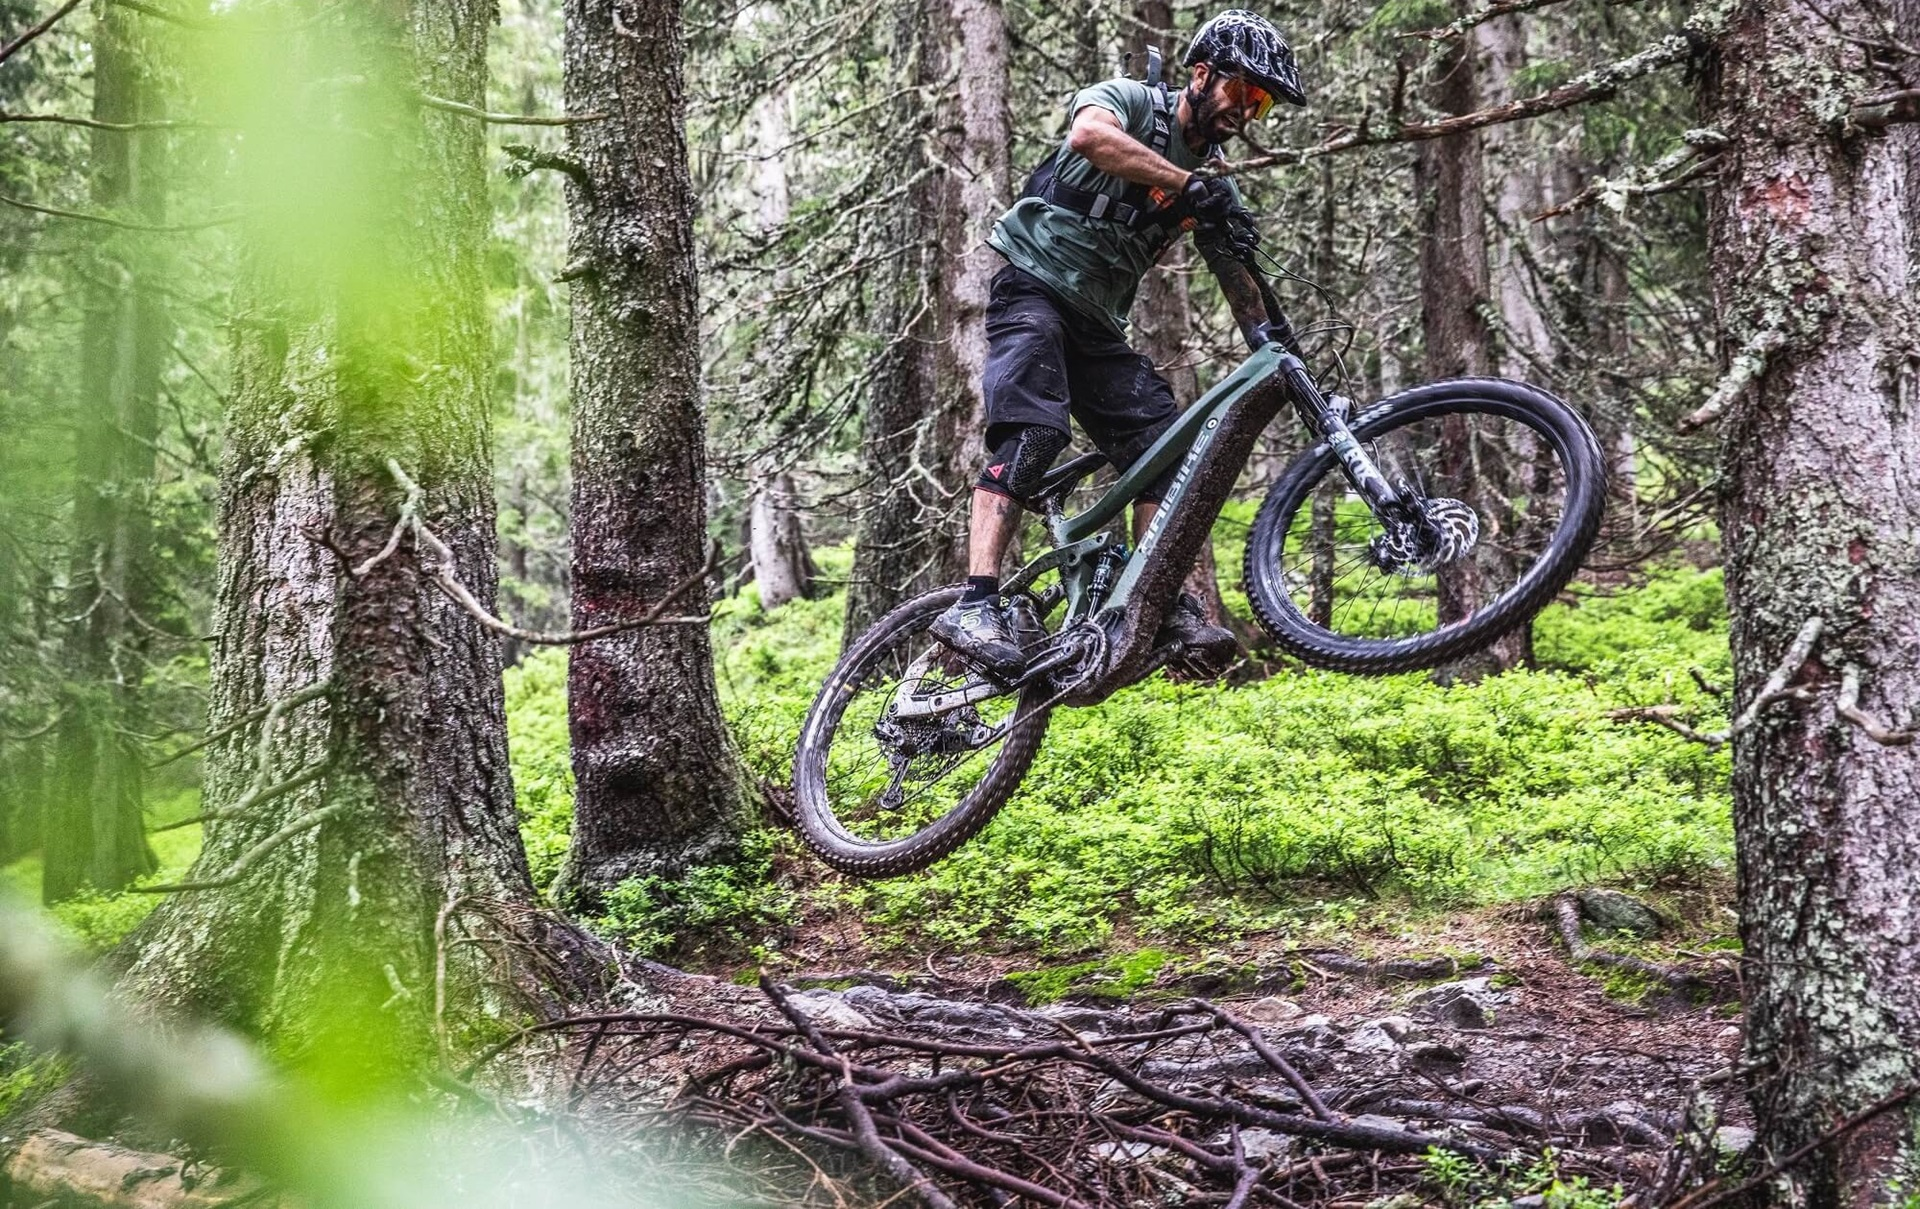 Haibike Hero Andi Wittmann doing jumps on Yamaha PW-X2 eMTB